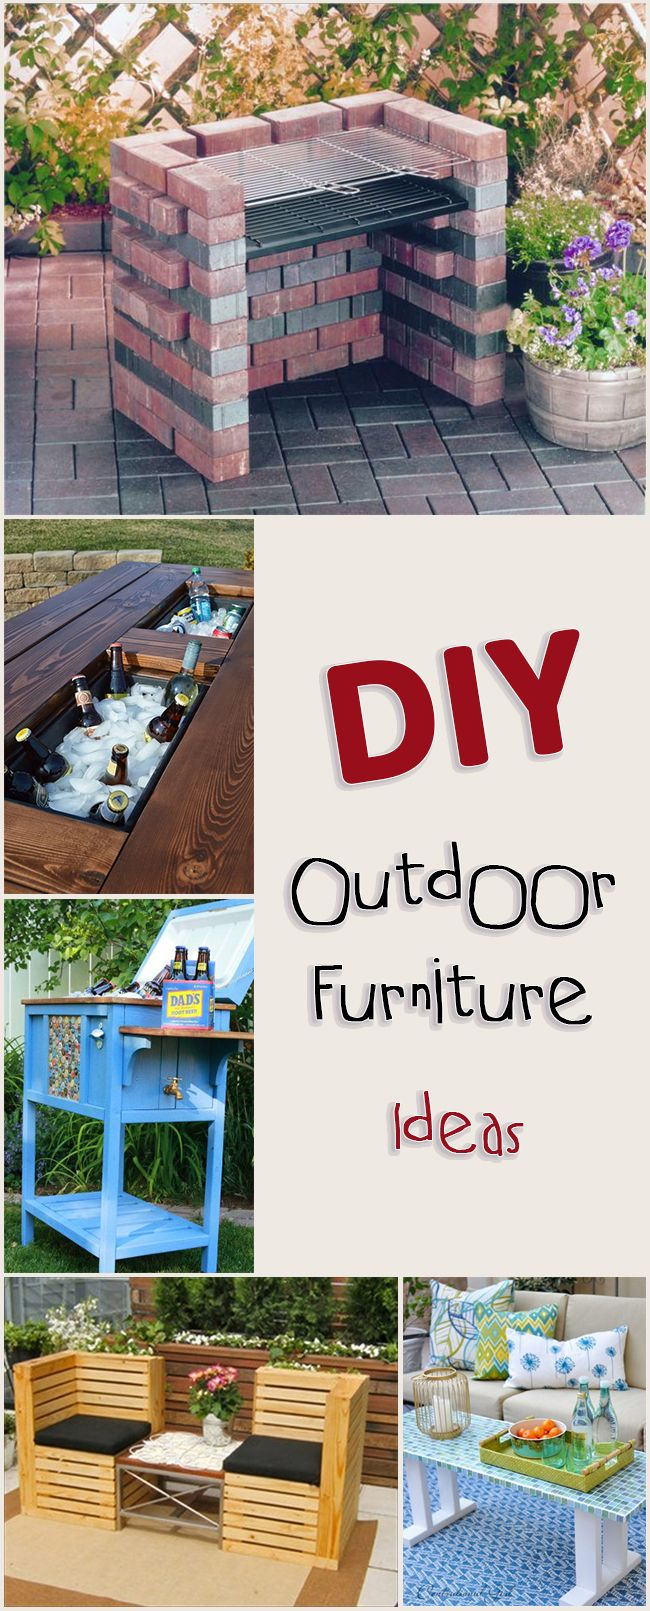 Outdoor Furniture DIY Ideas that are Awesome